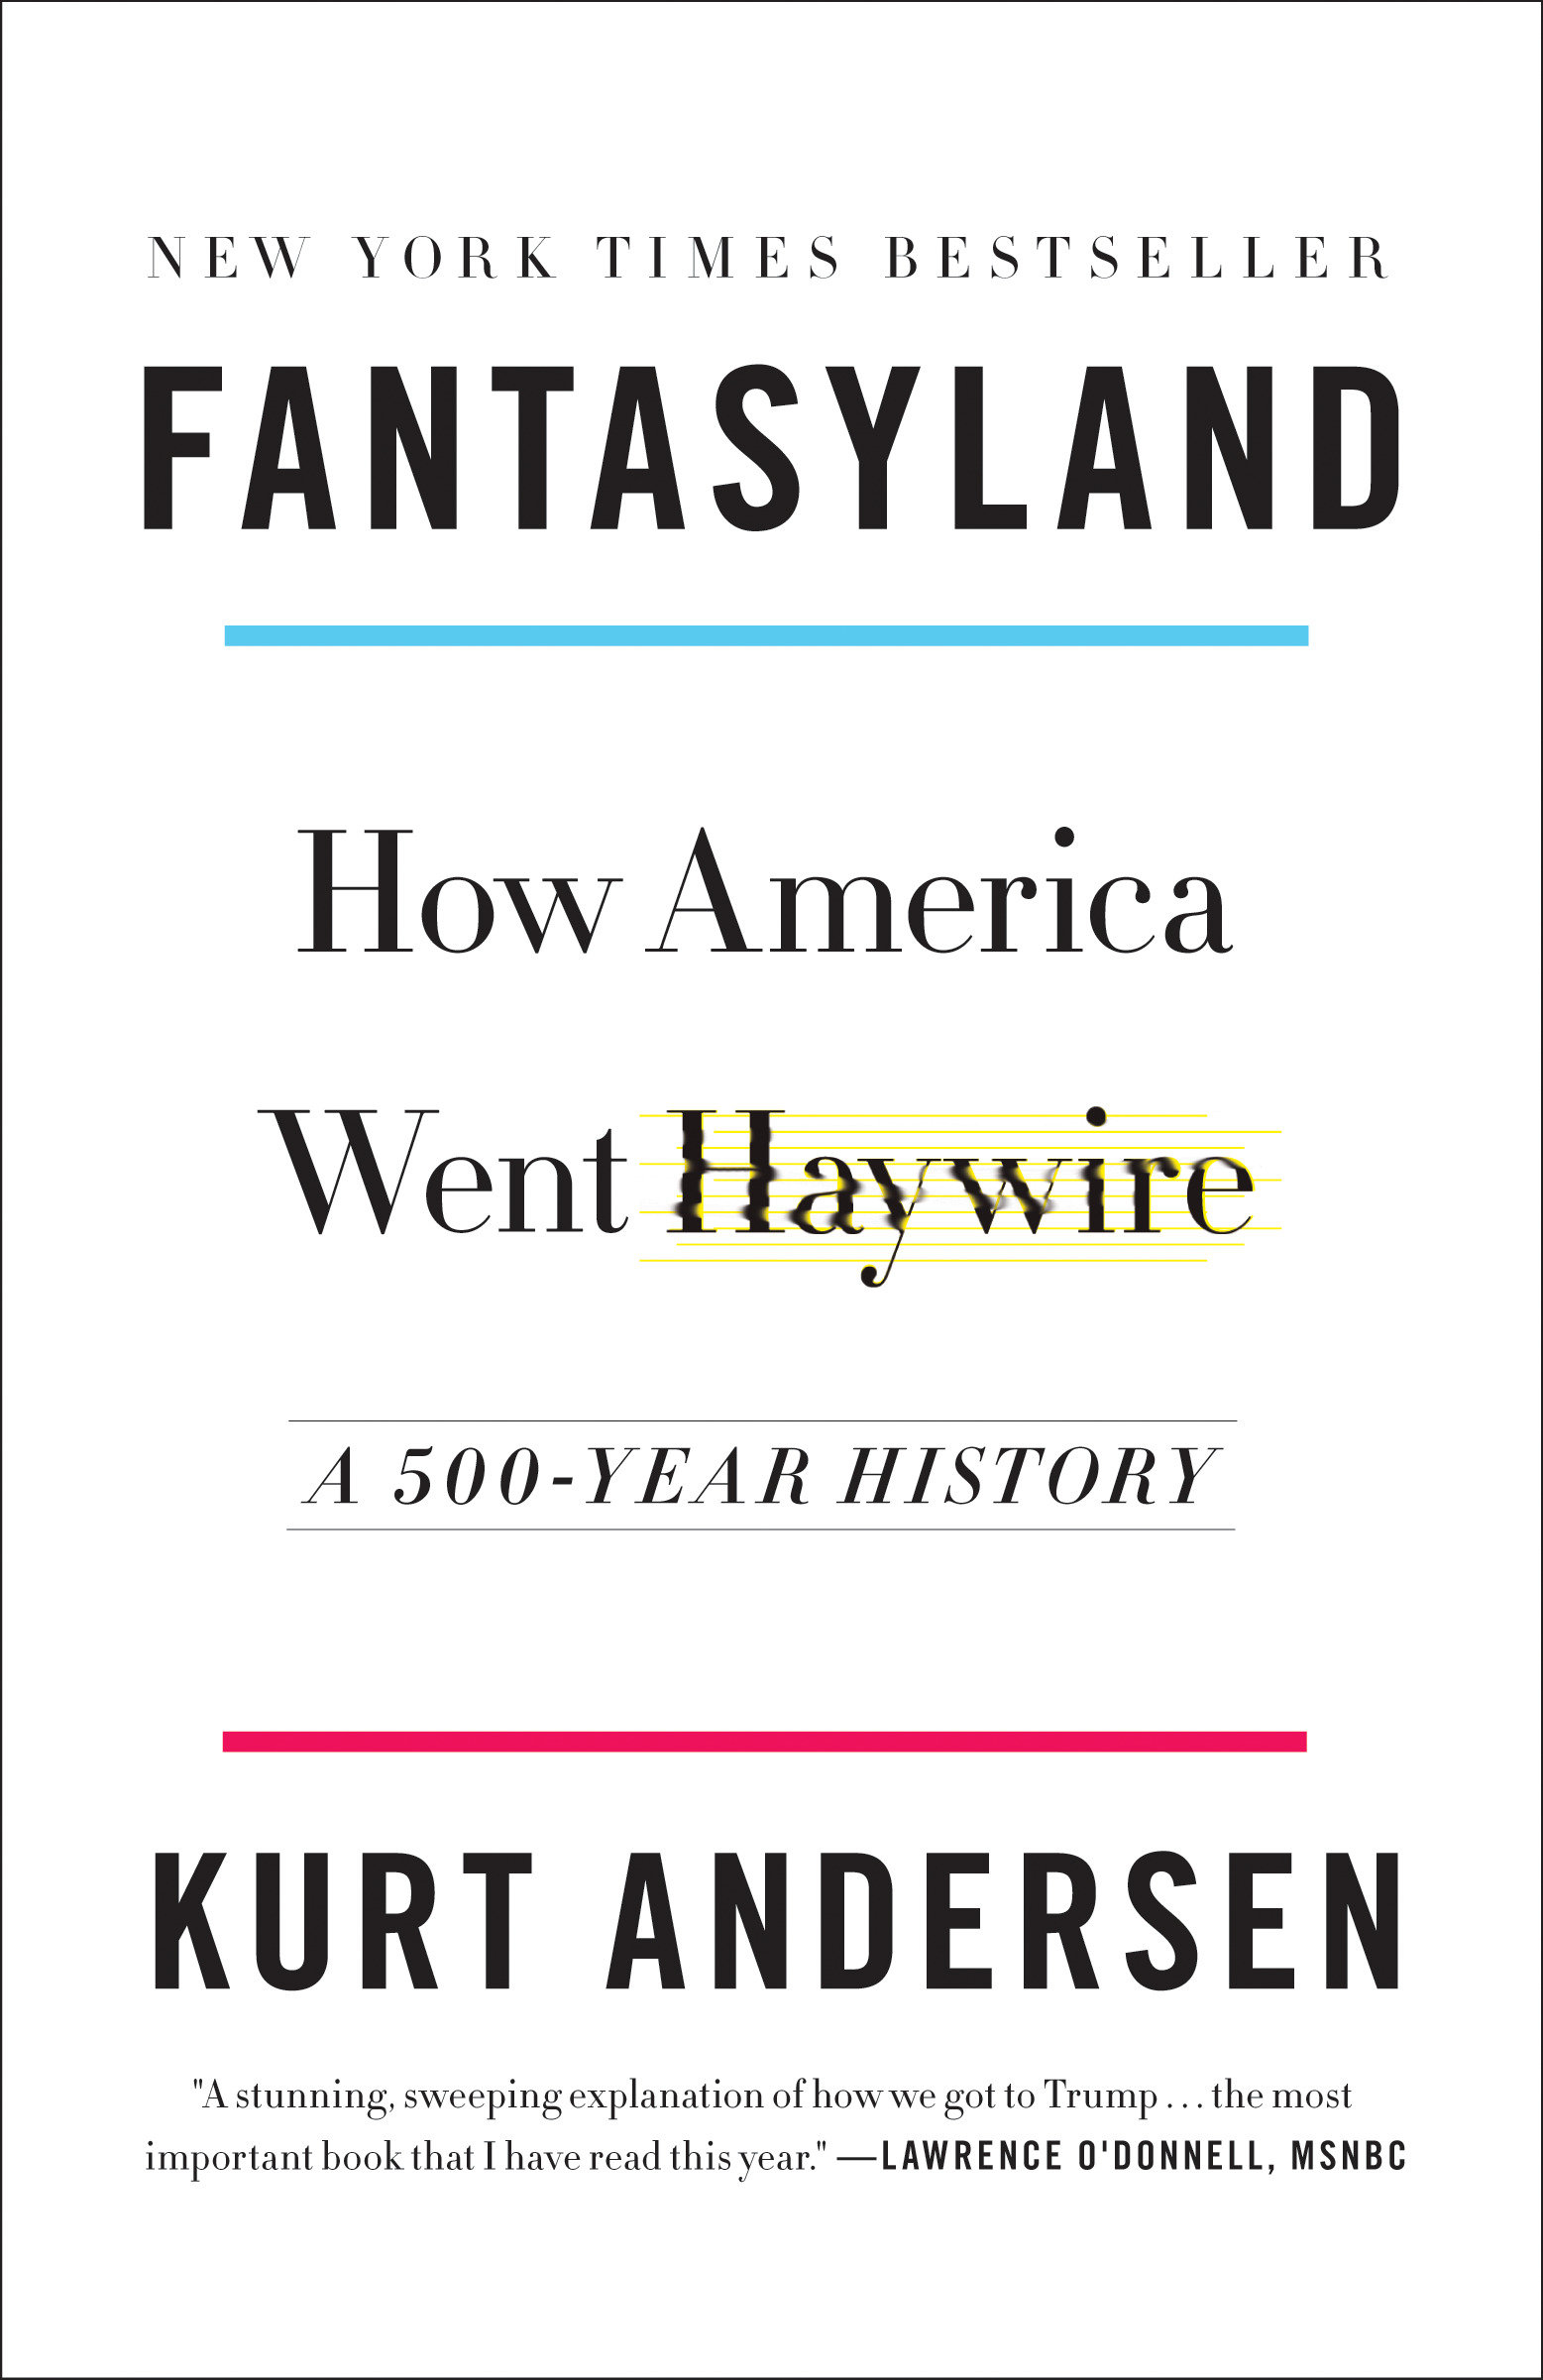 Fantasyland how America went haywire : a 500-year history